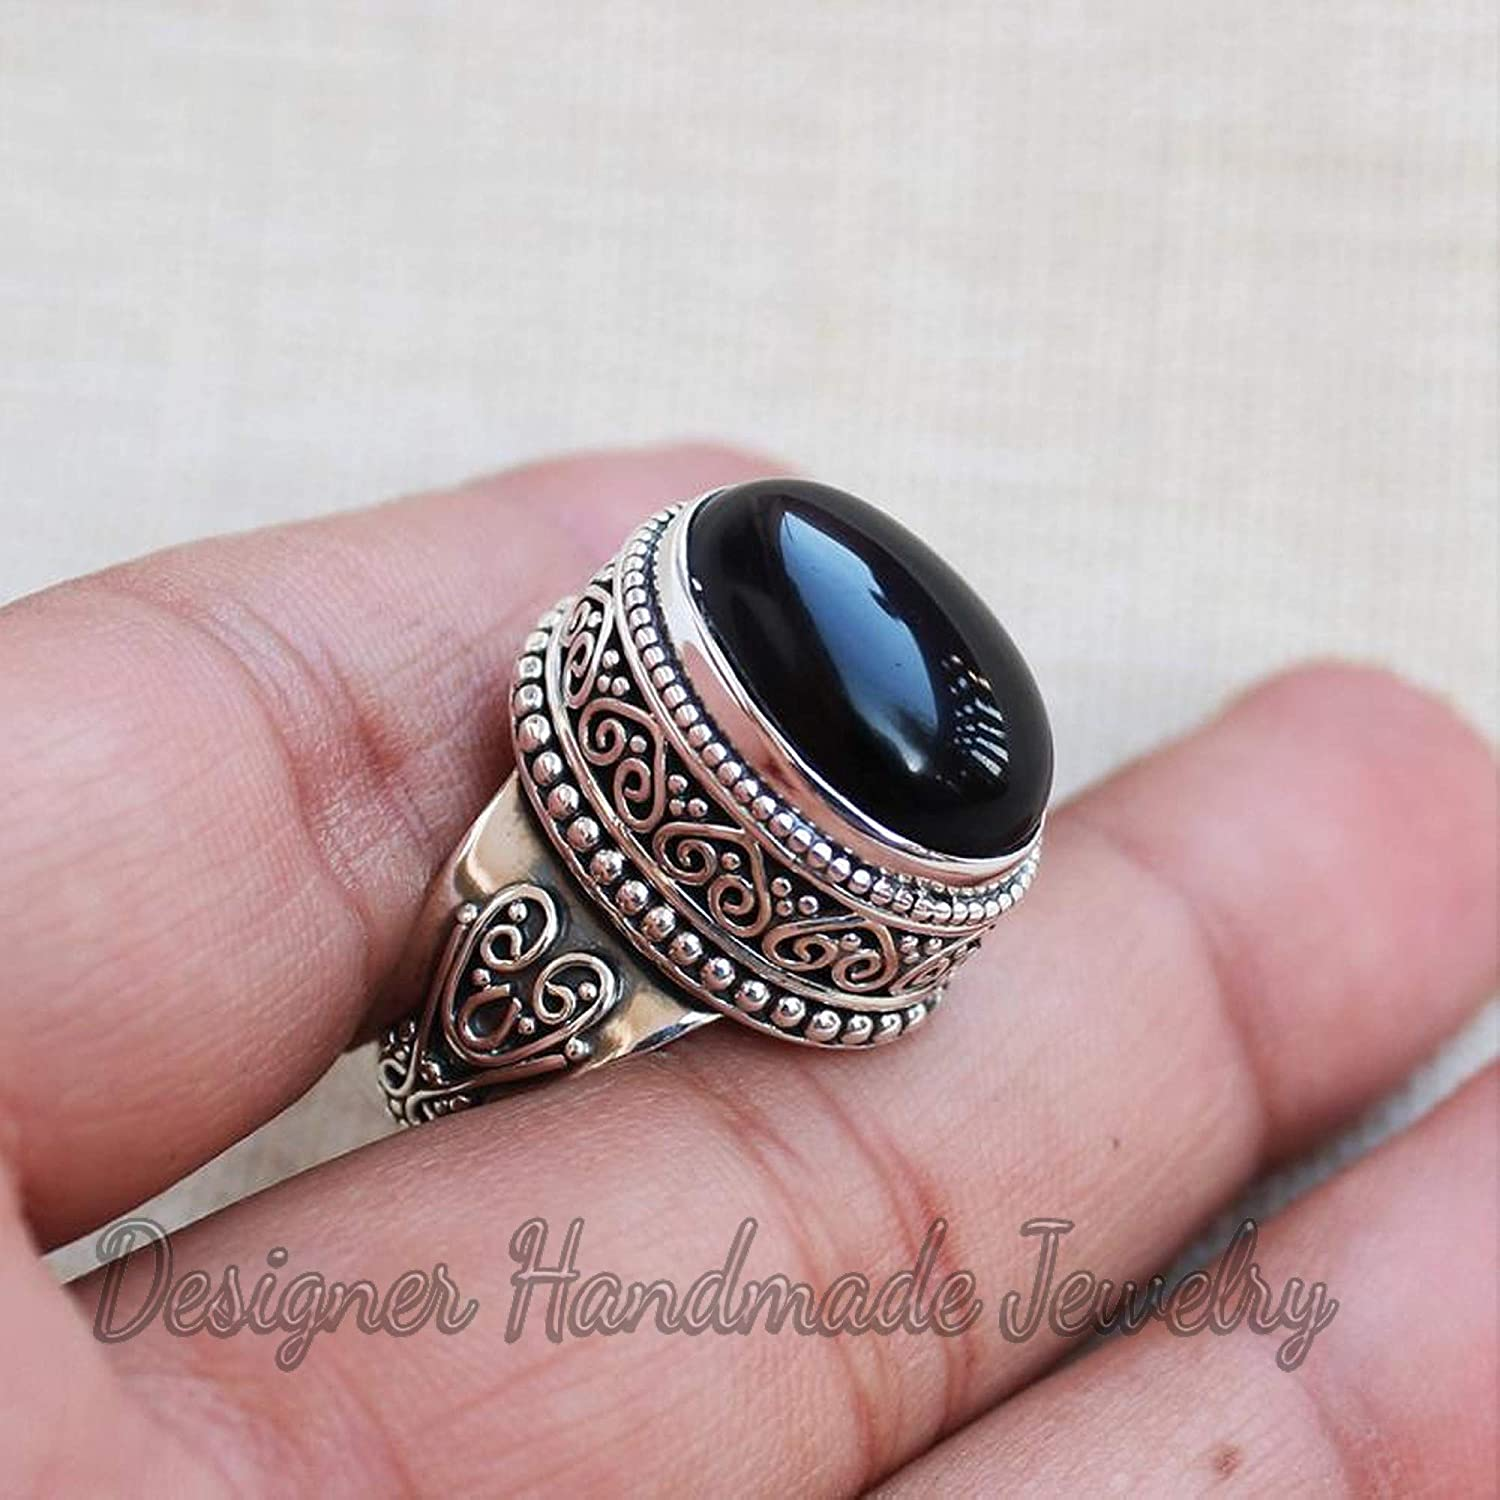 7.3 Gms Natural Black Onyx Gemstone Ring Beautiful Faceted Gemstone Jewelry 925 Silver Overlay Ring German SILVER RING SM61